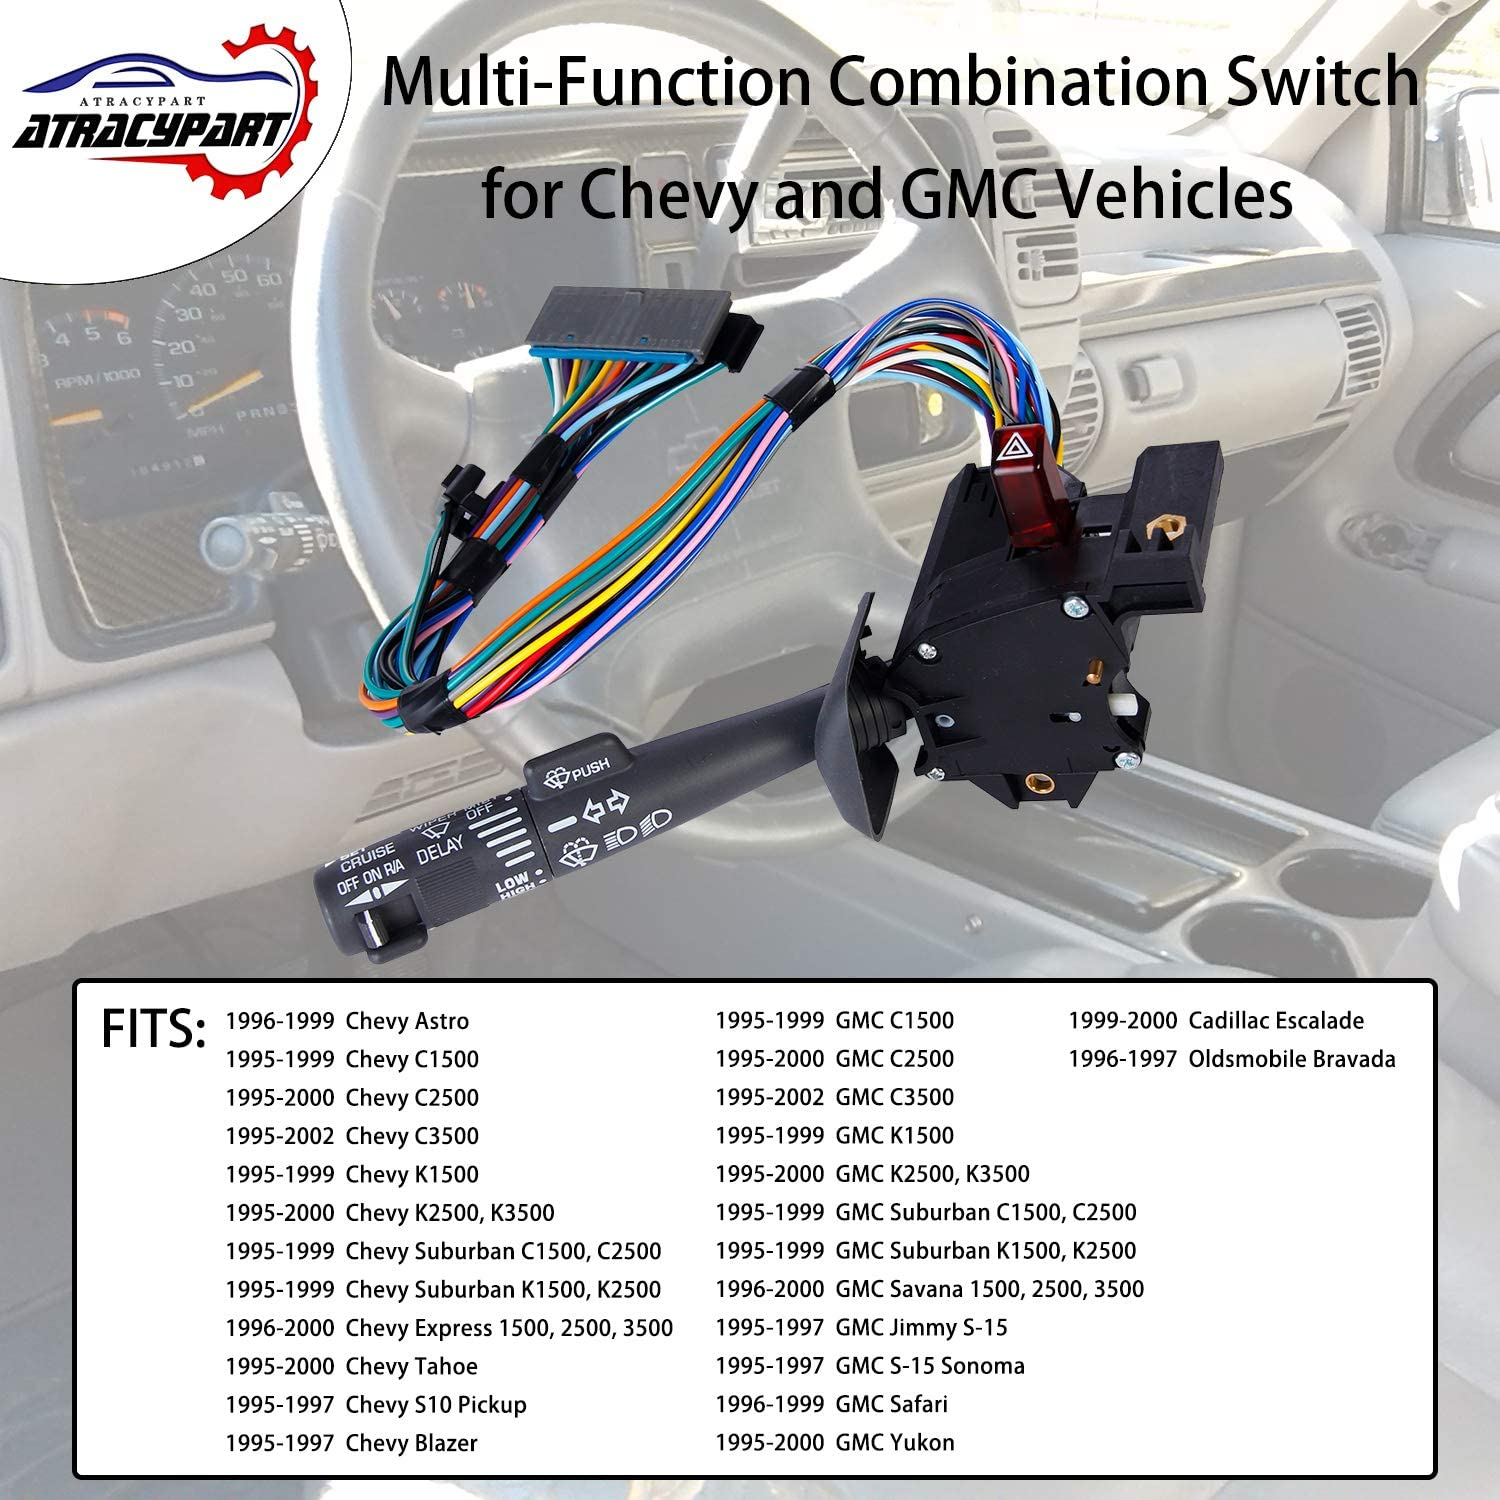 Amazon.com: 15045085-26100985-19259313: Automotive on 1995 s10 electrical diagram, 1996 s10 motor, 1996 s10 radio, 1996 s10 wire harness, 1996 s10 speedometer, 1996 s10 firing order, 1996 s10 alternator wiring, 1996 s10 ignition coil, chevy s10 starter diagram, 1996 s10 owner's manual, 1996 s10 radiator, 1996 s10 exploded view, 1996 s10 wheels, 1996 chevy blazer engine diagram, 1996 s10 headlight, 1996 s10 fuel system, 1996 s10 chassis, 1996 s10 distributor, 2000 chevy blazer vacuum line diagram, 1996 s10 pickup,